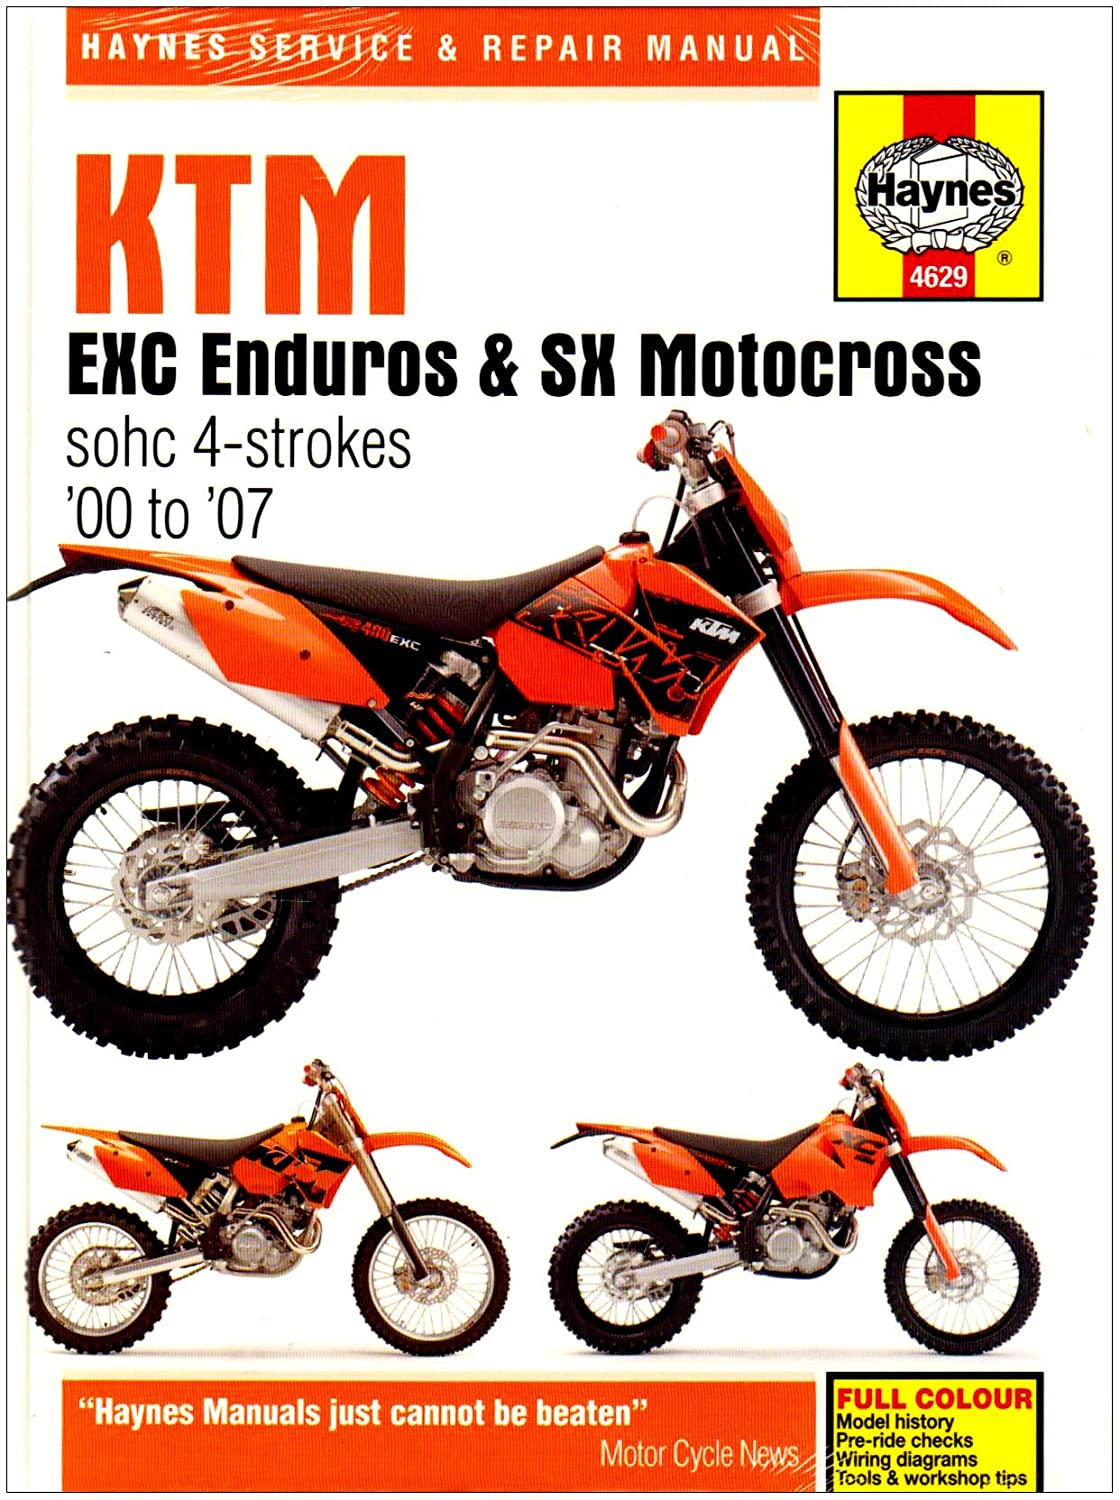 ktm 380 exc wiring diagram ktm wiring diagrams description amazoncom haynes repair manual ktm 4629 phil mather automotive 81u5spvvjll 1844256294 ktm 360 exc engine diagram ktm 360 exc engine diagram